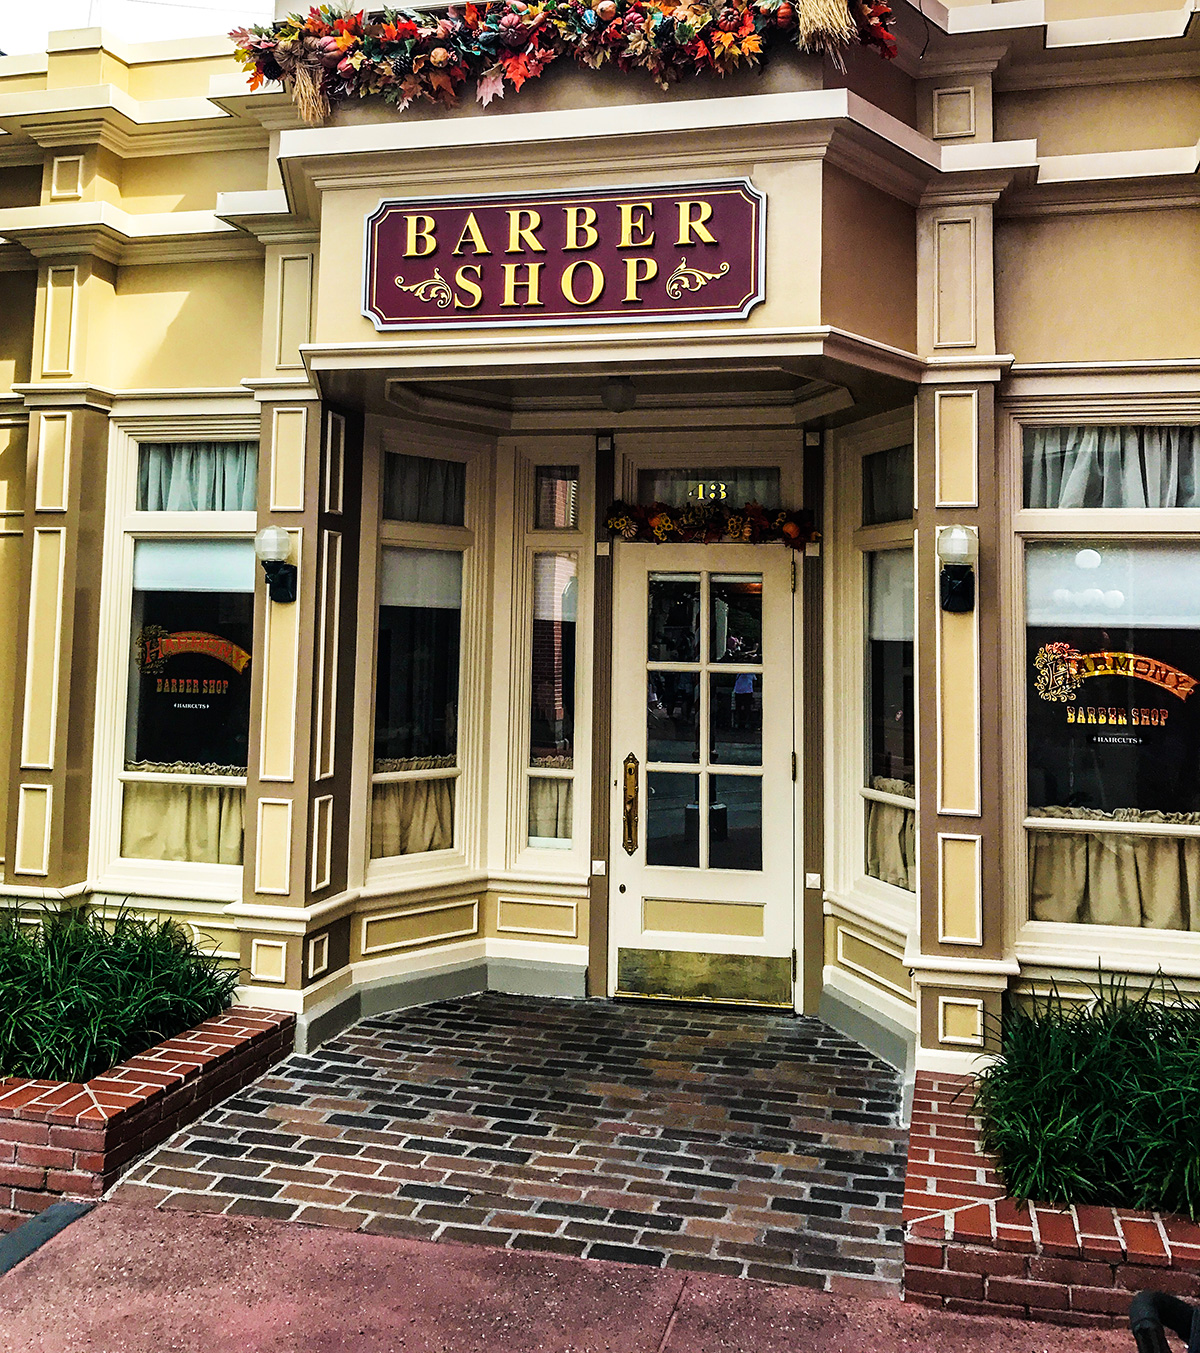 Harmony-Barber-Shop-Main-Street-Magic-Kingdom